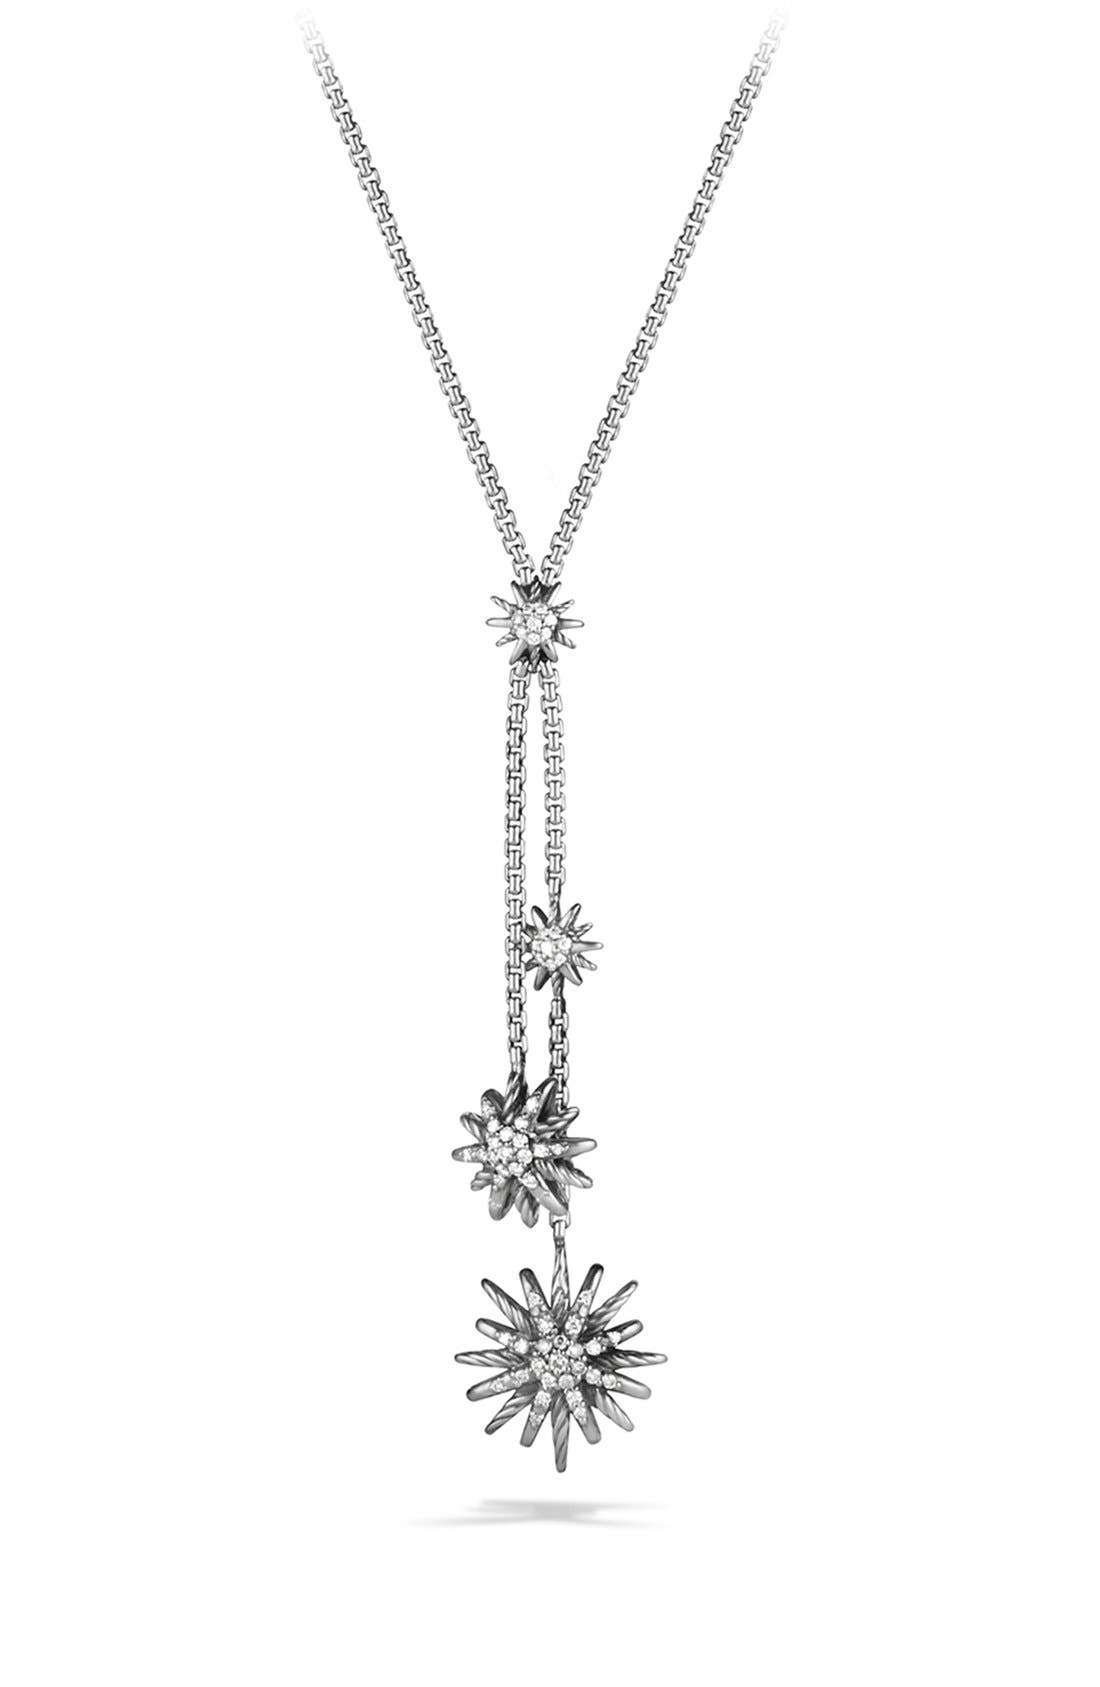 David Yurman 'Starburst' Y Necklace with Diamonds